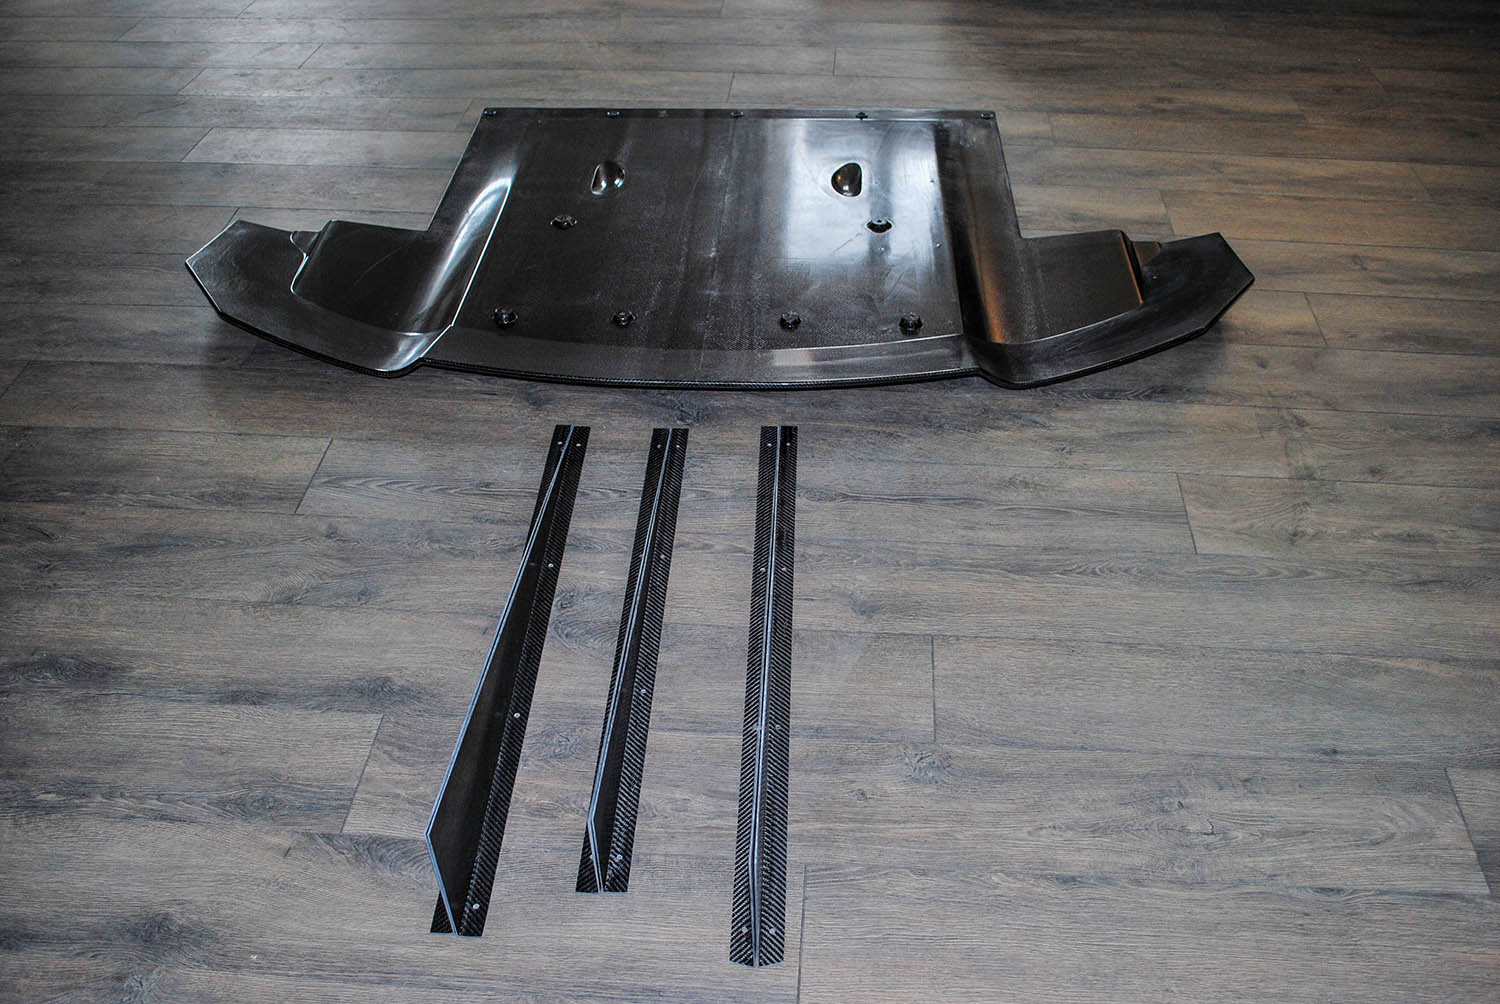 R35 GTR Rear Diffuser with Strakes